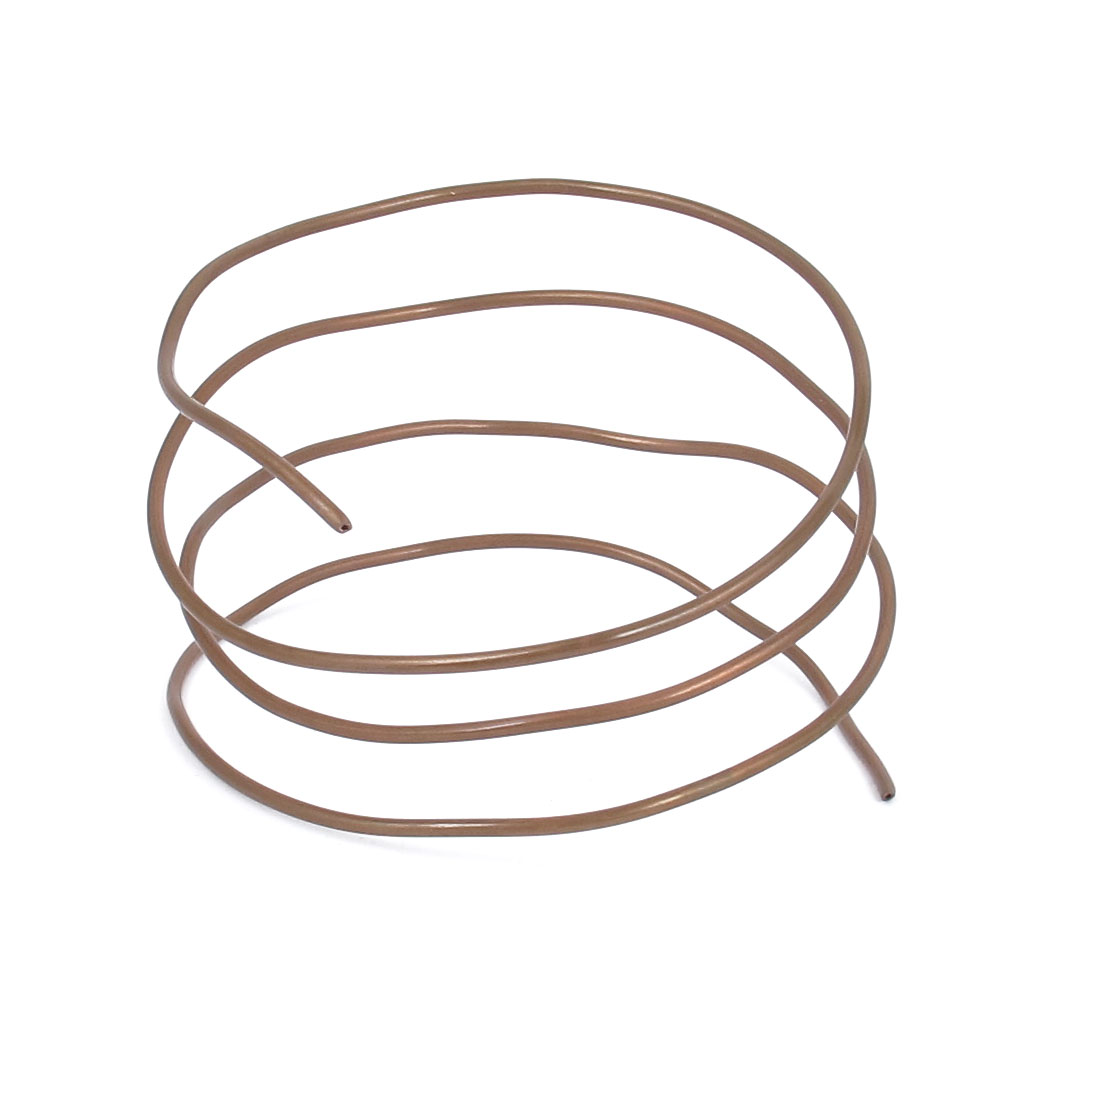 2.5mm Dia 90cm 3Ft Length Copper Tone Refrigerator Refrigeration freezer Tube Tubing Coil